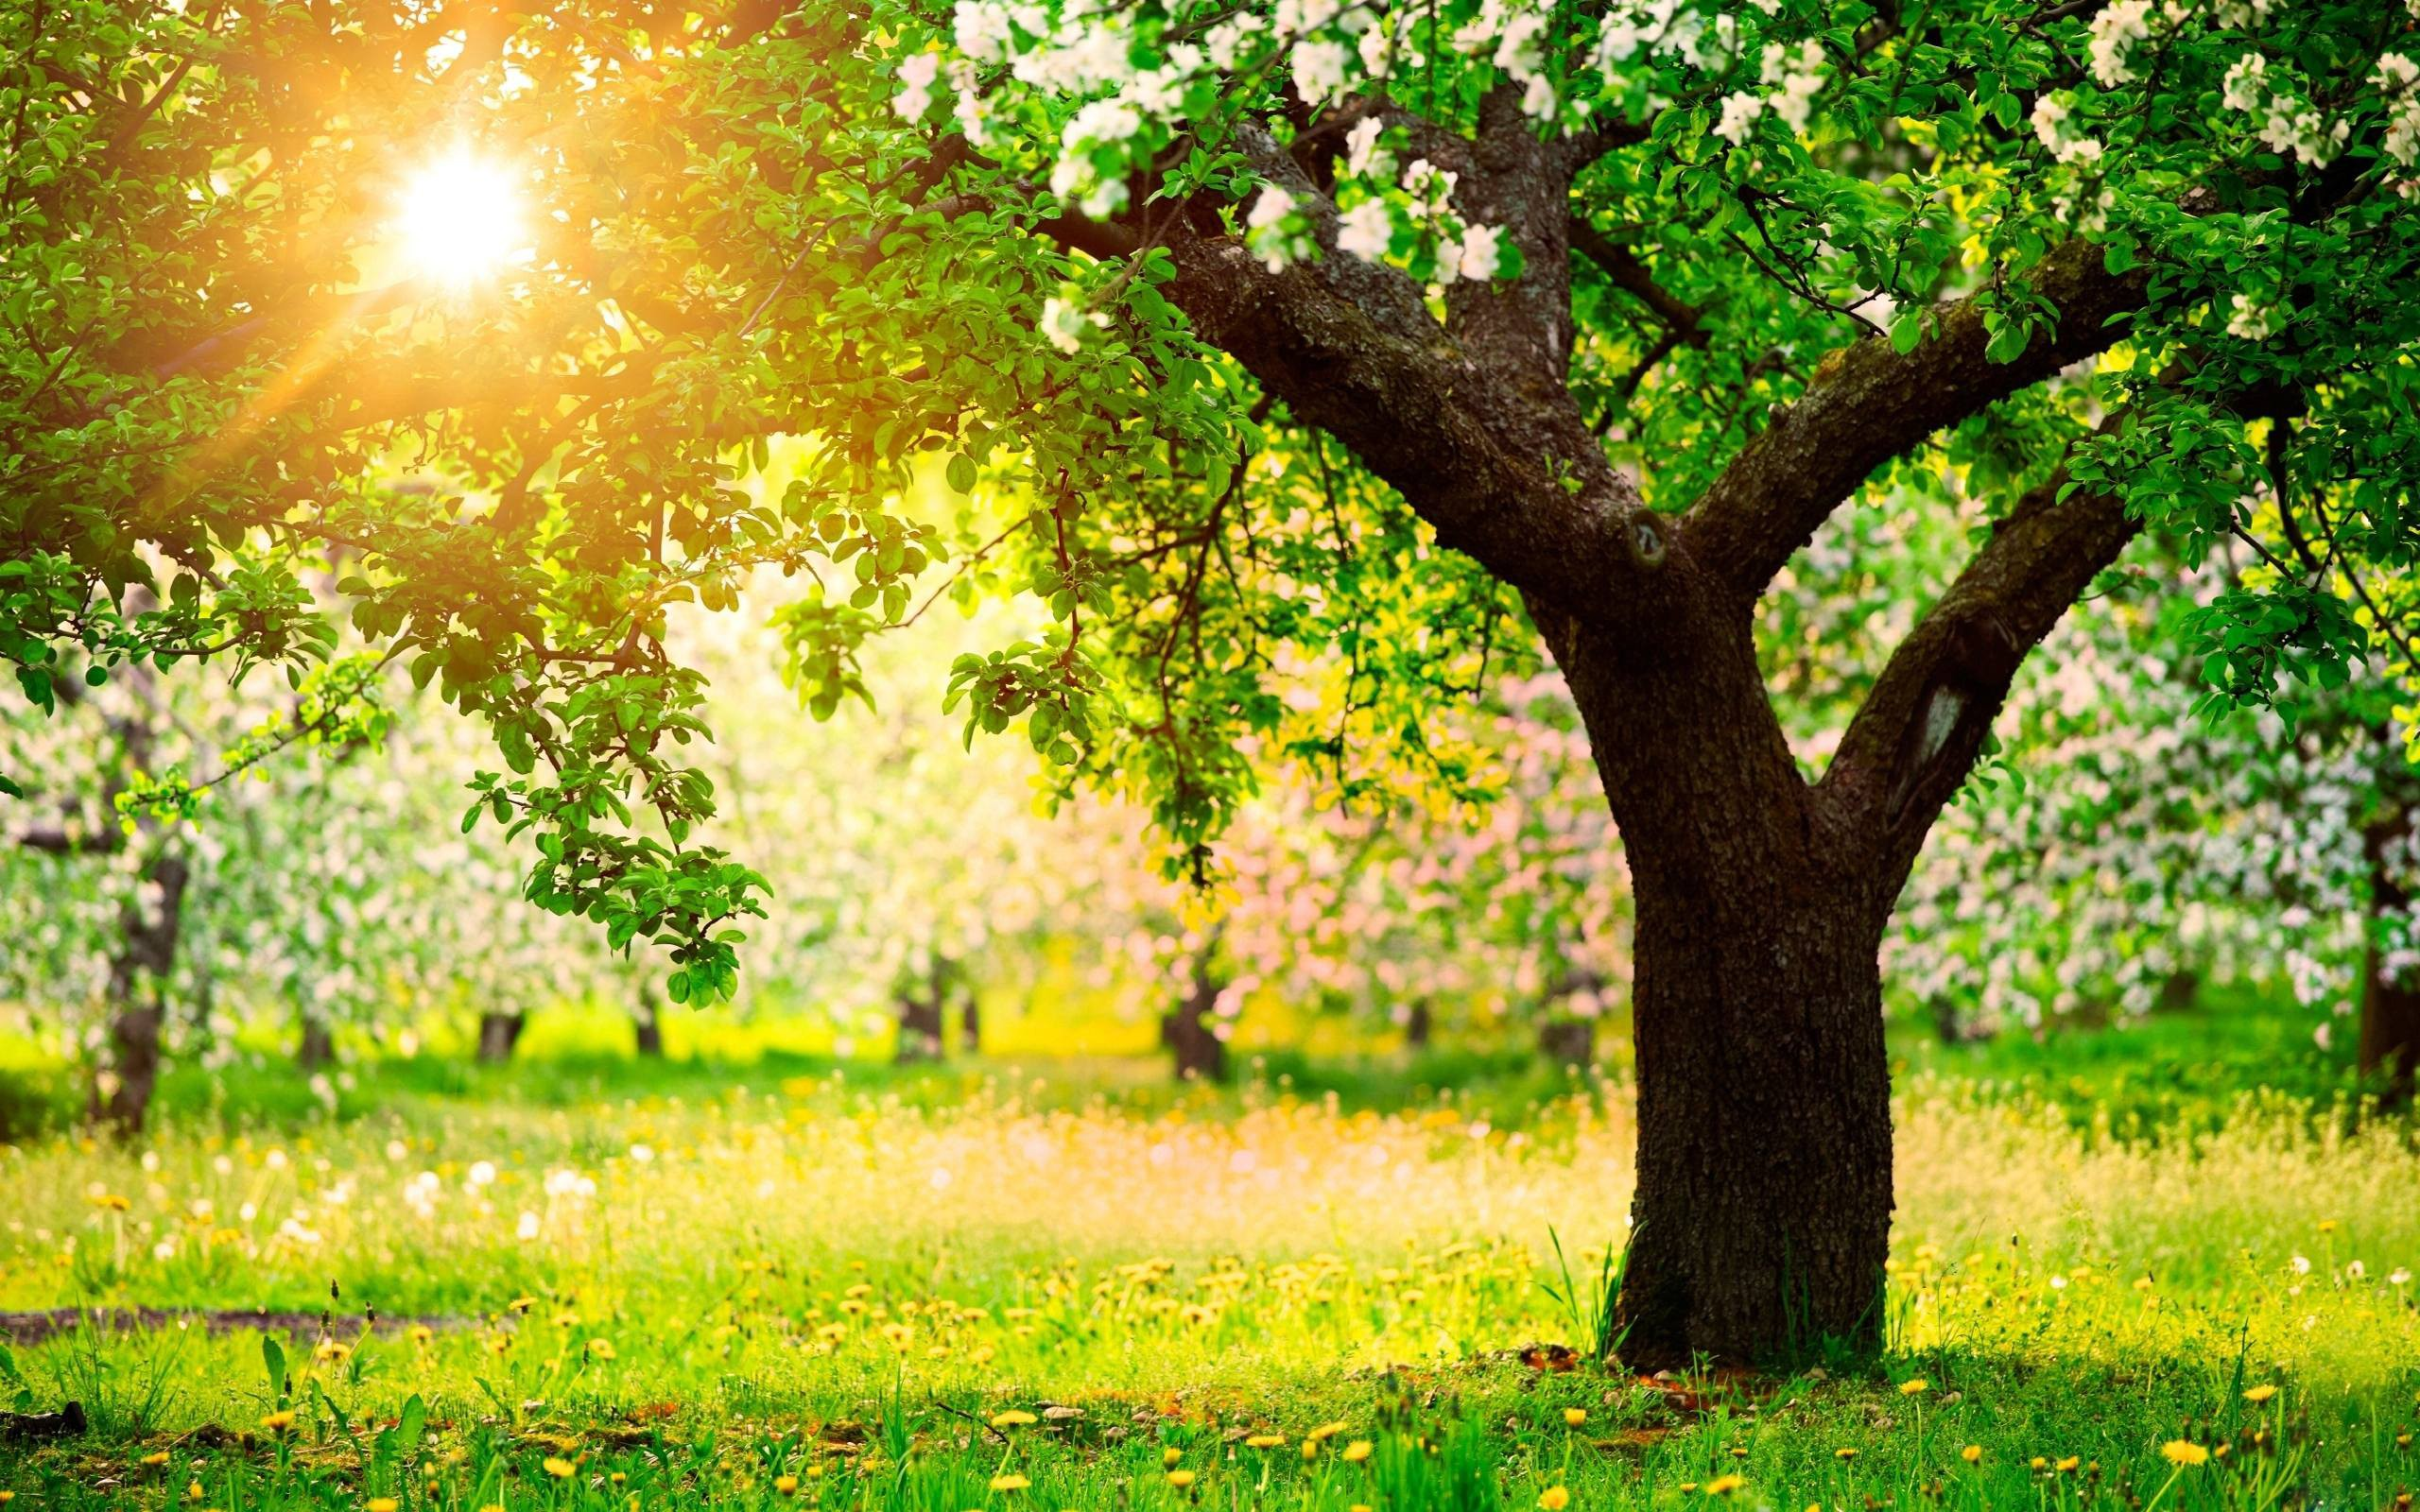 Beautiful Spring Nature Desktop Wallpapers   New HD Wallpapers 2560x1600